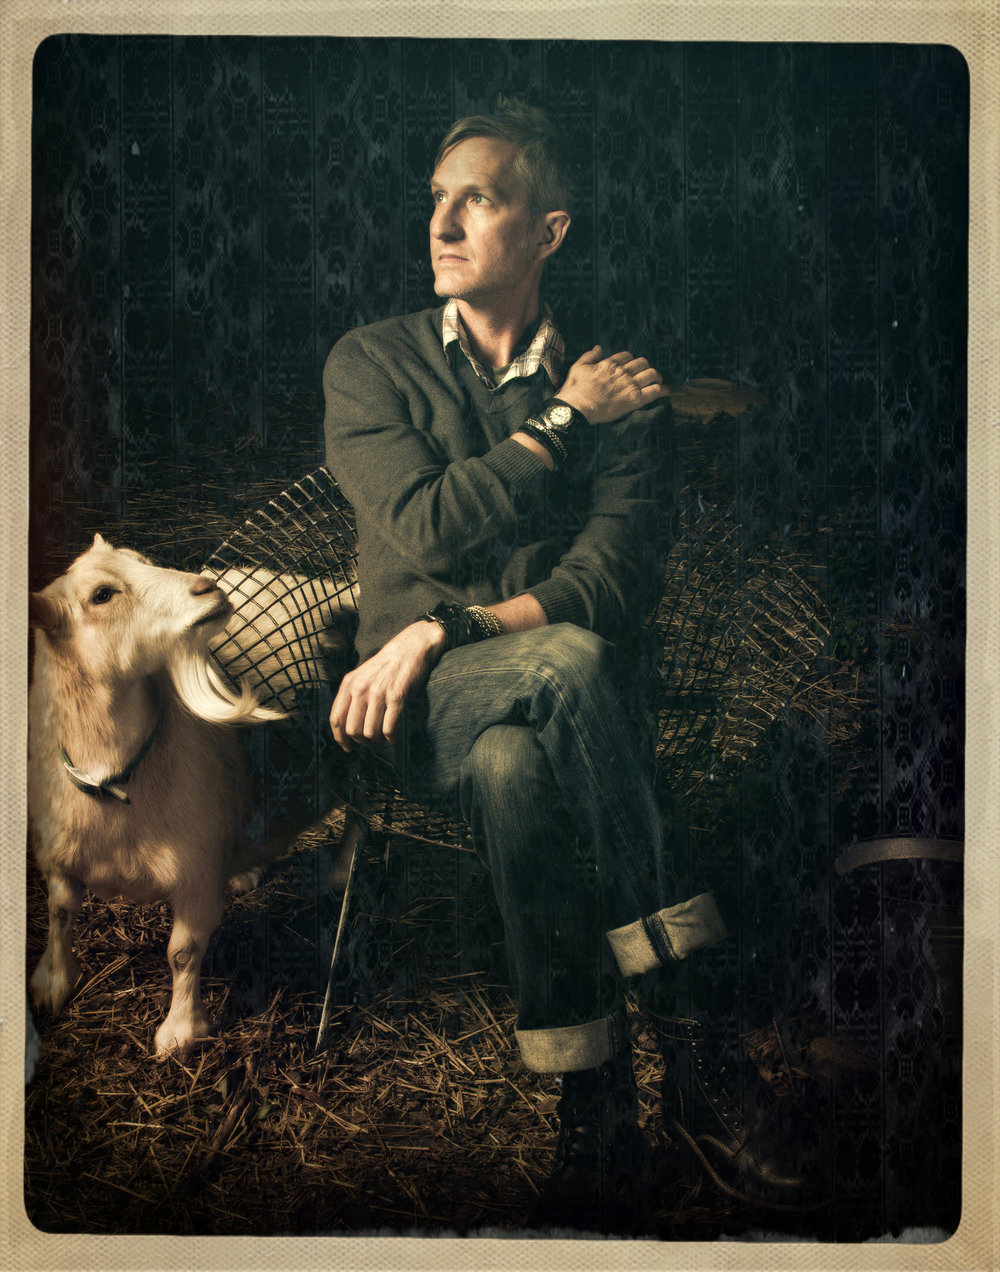 scott crow and pillow goat image